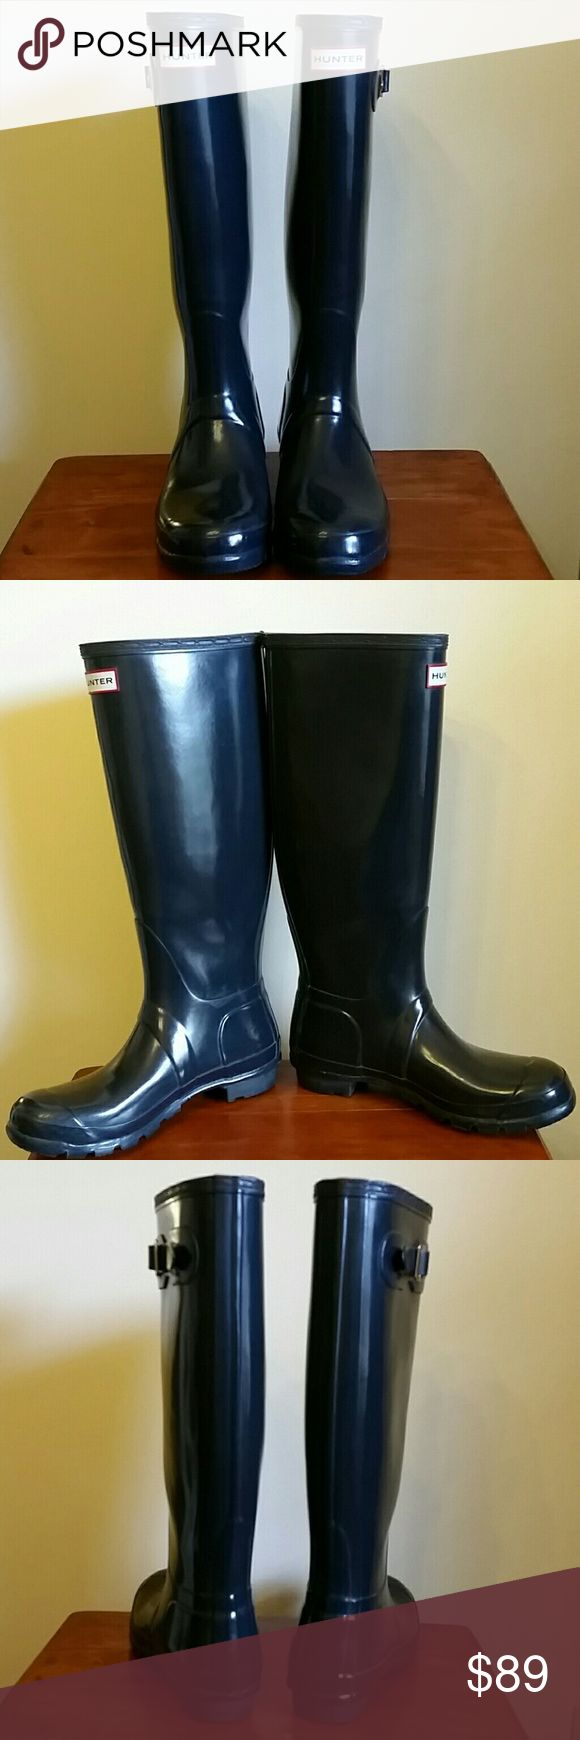 Hunter Boots / Tall Gloss / Navy Great condition tall gloss Hunter boots in the color of navy.   Size is UK 6, US 7M/8F, EU39.  Hunter boots run a little large, and it's said to size down.  Visit the Hunter boot website for more helpful information on sizing.  Please see other listing in my closet of additional pictures of these boots before purchasing.I like to be very thorough :)  Trying to clean out my closet.  *No trades, thank you* *Please use offer button to make offer /discuss pricing…